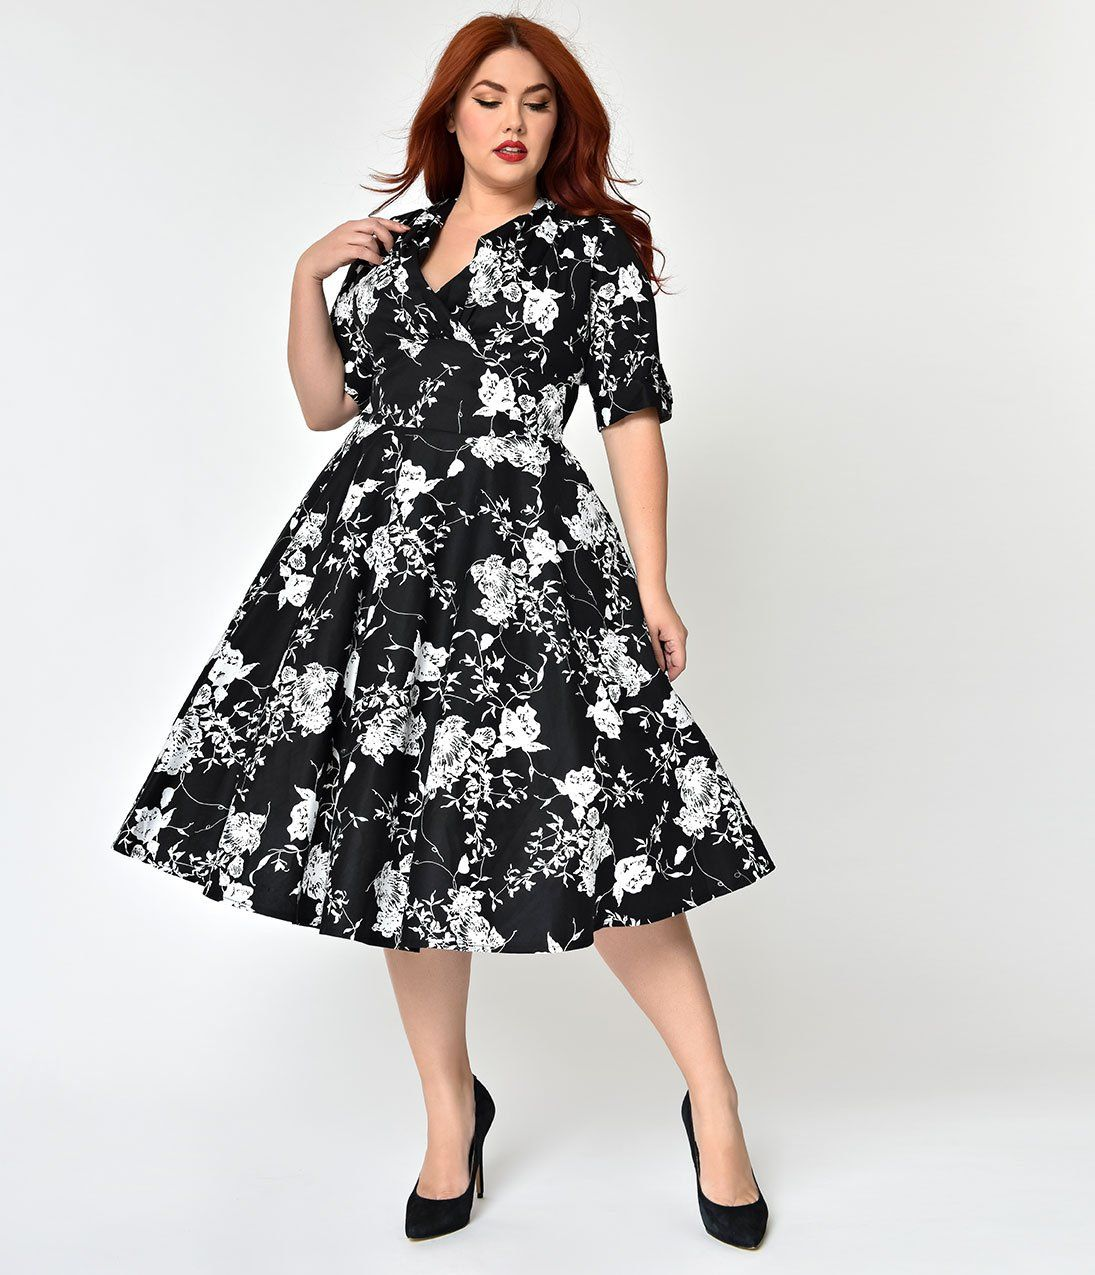 S plus size fashion and clothing history retro s and s